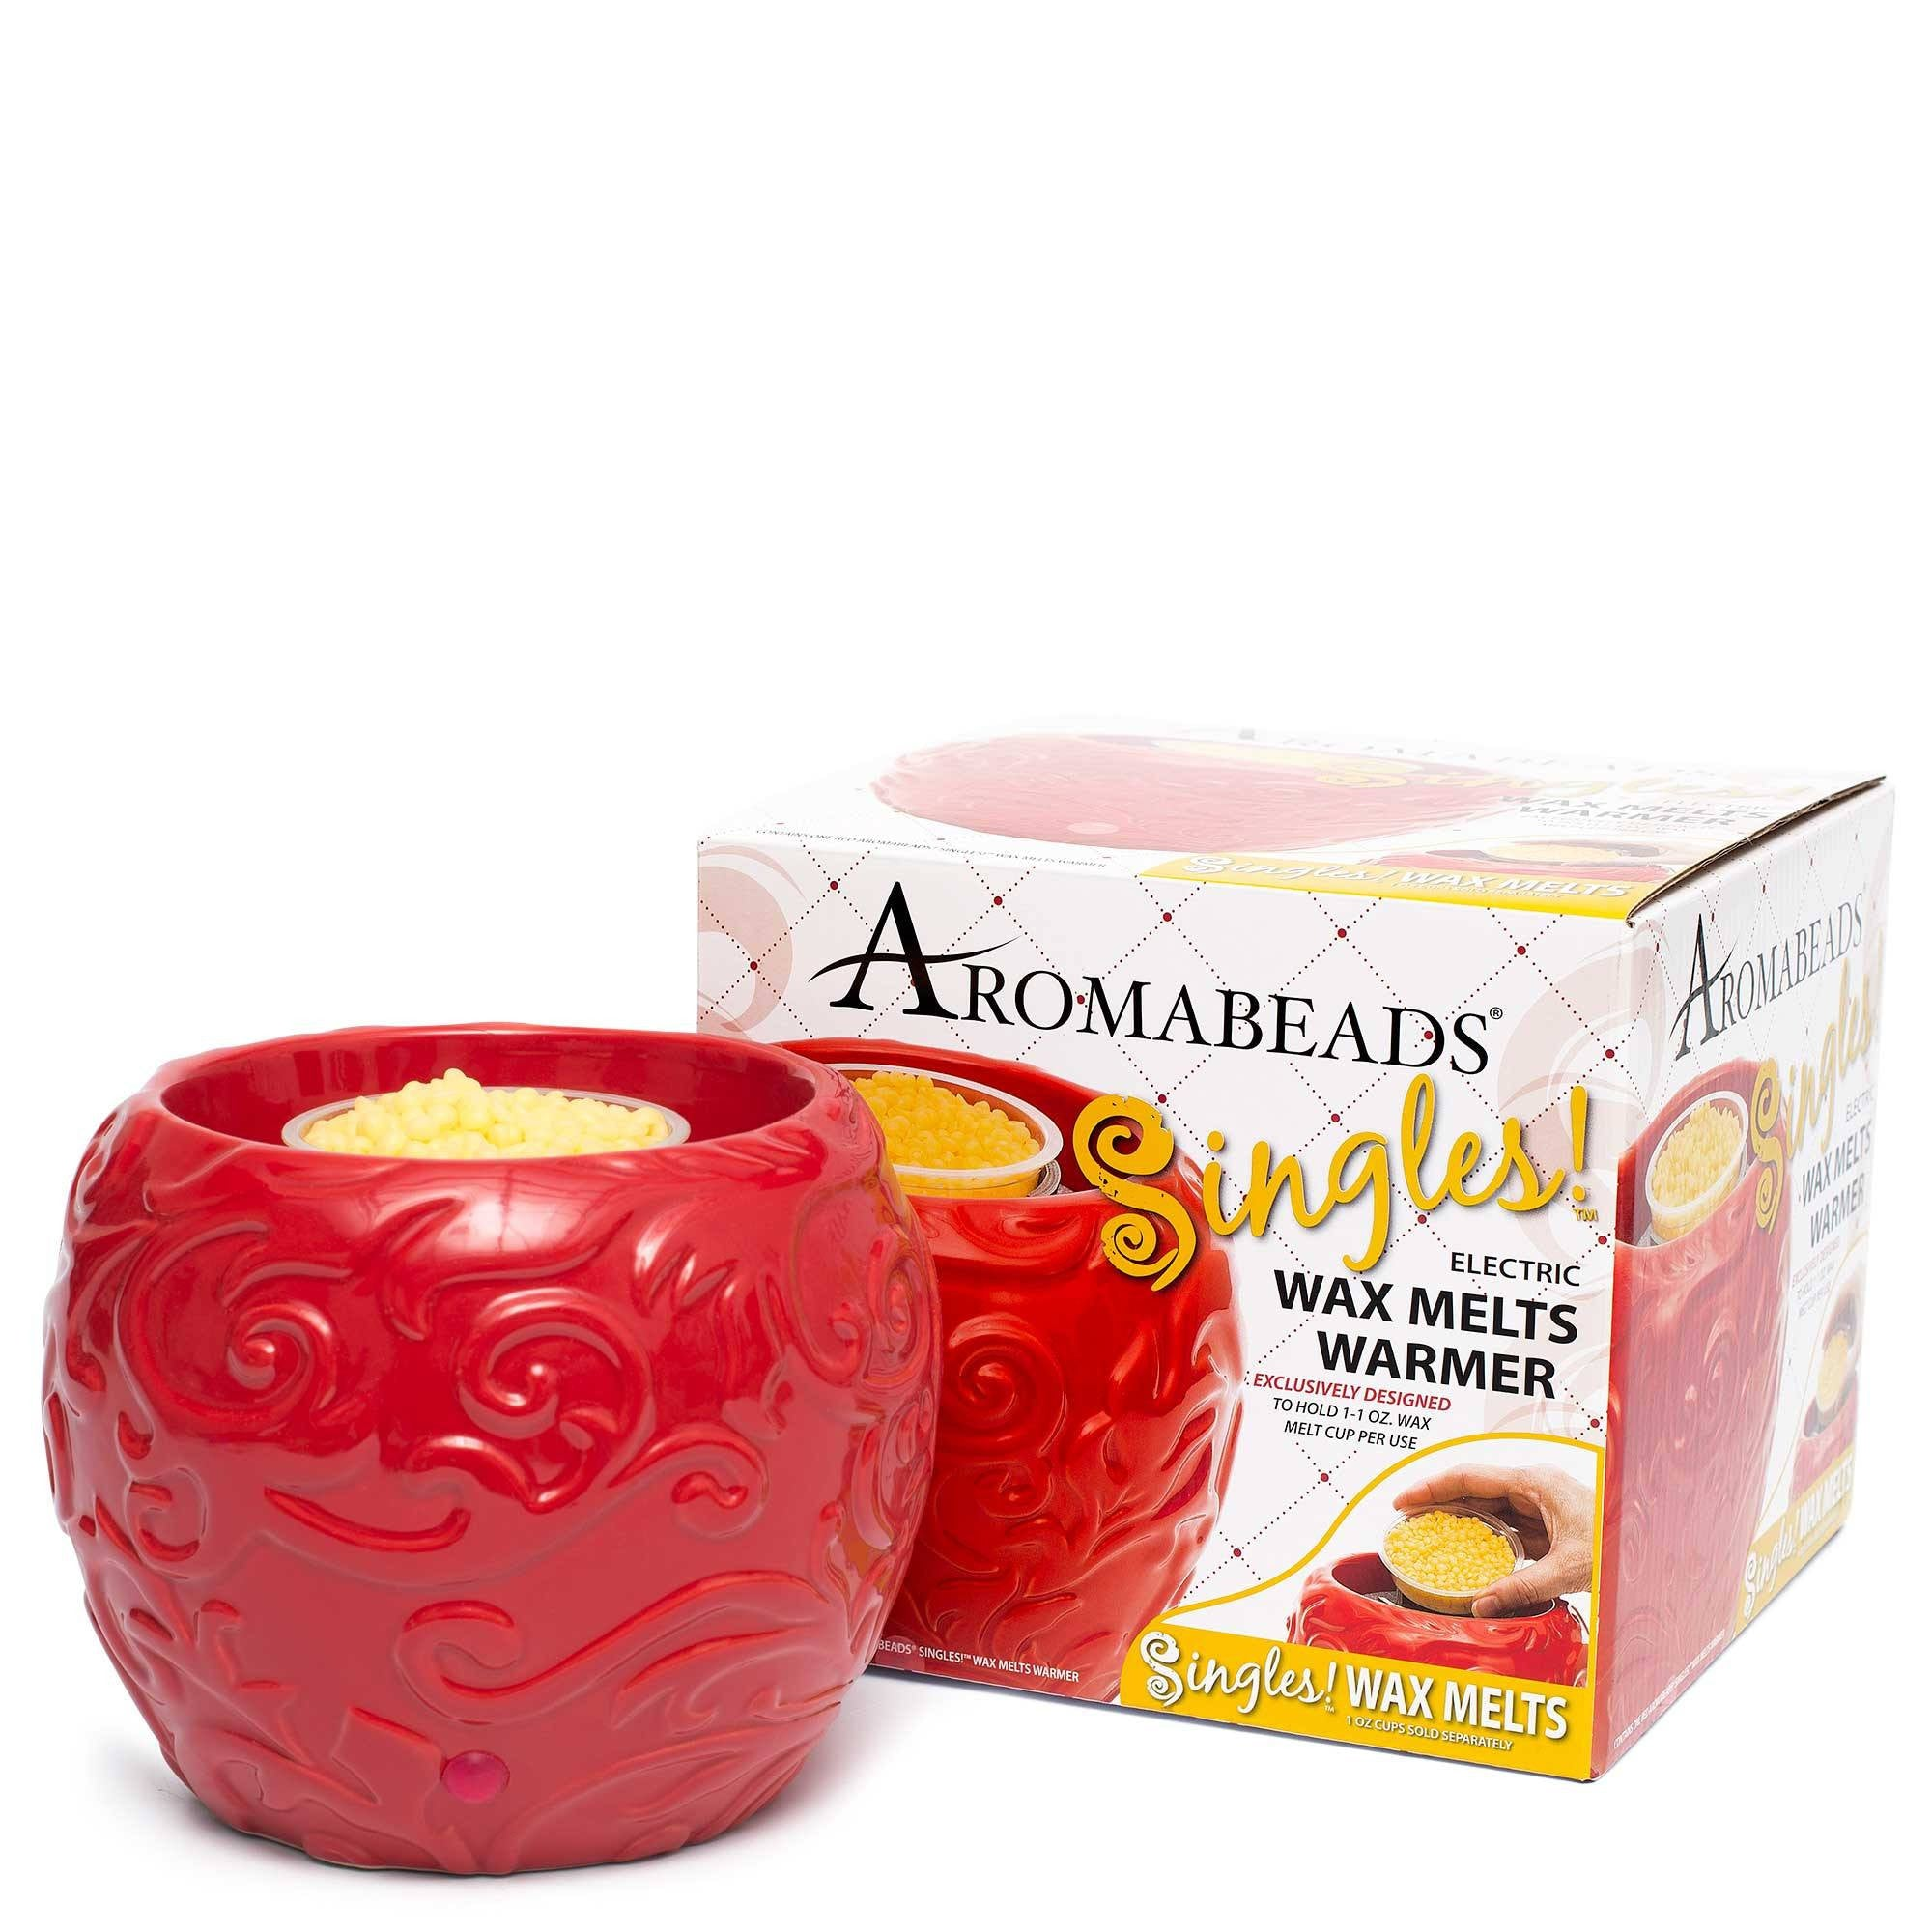 Aromabeads Singles Apple Melon Scented Wax Melts Melts Candlemart.com $ 1.49